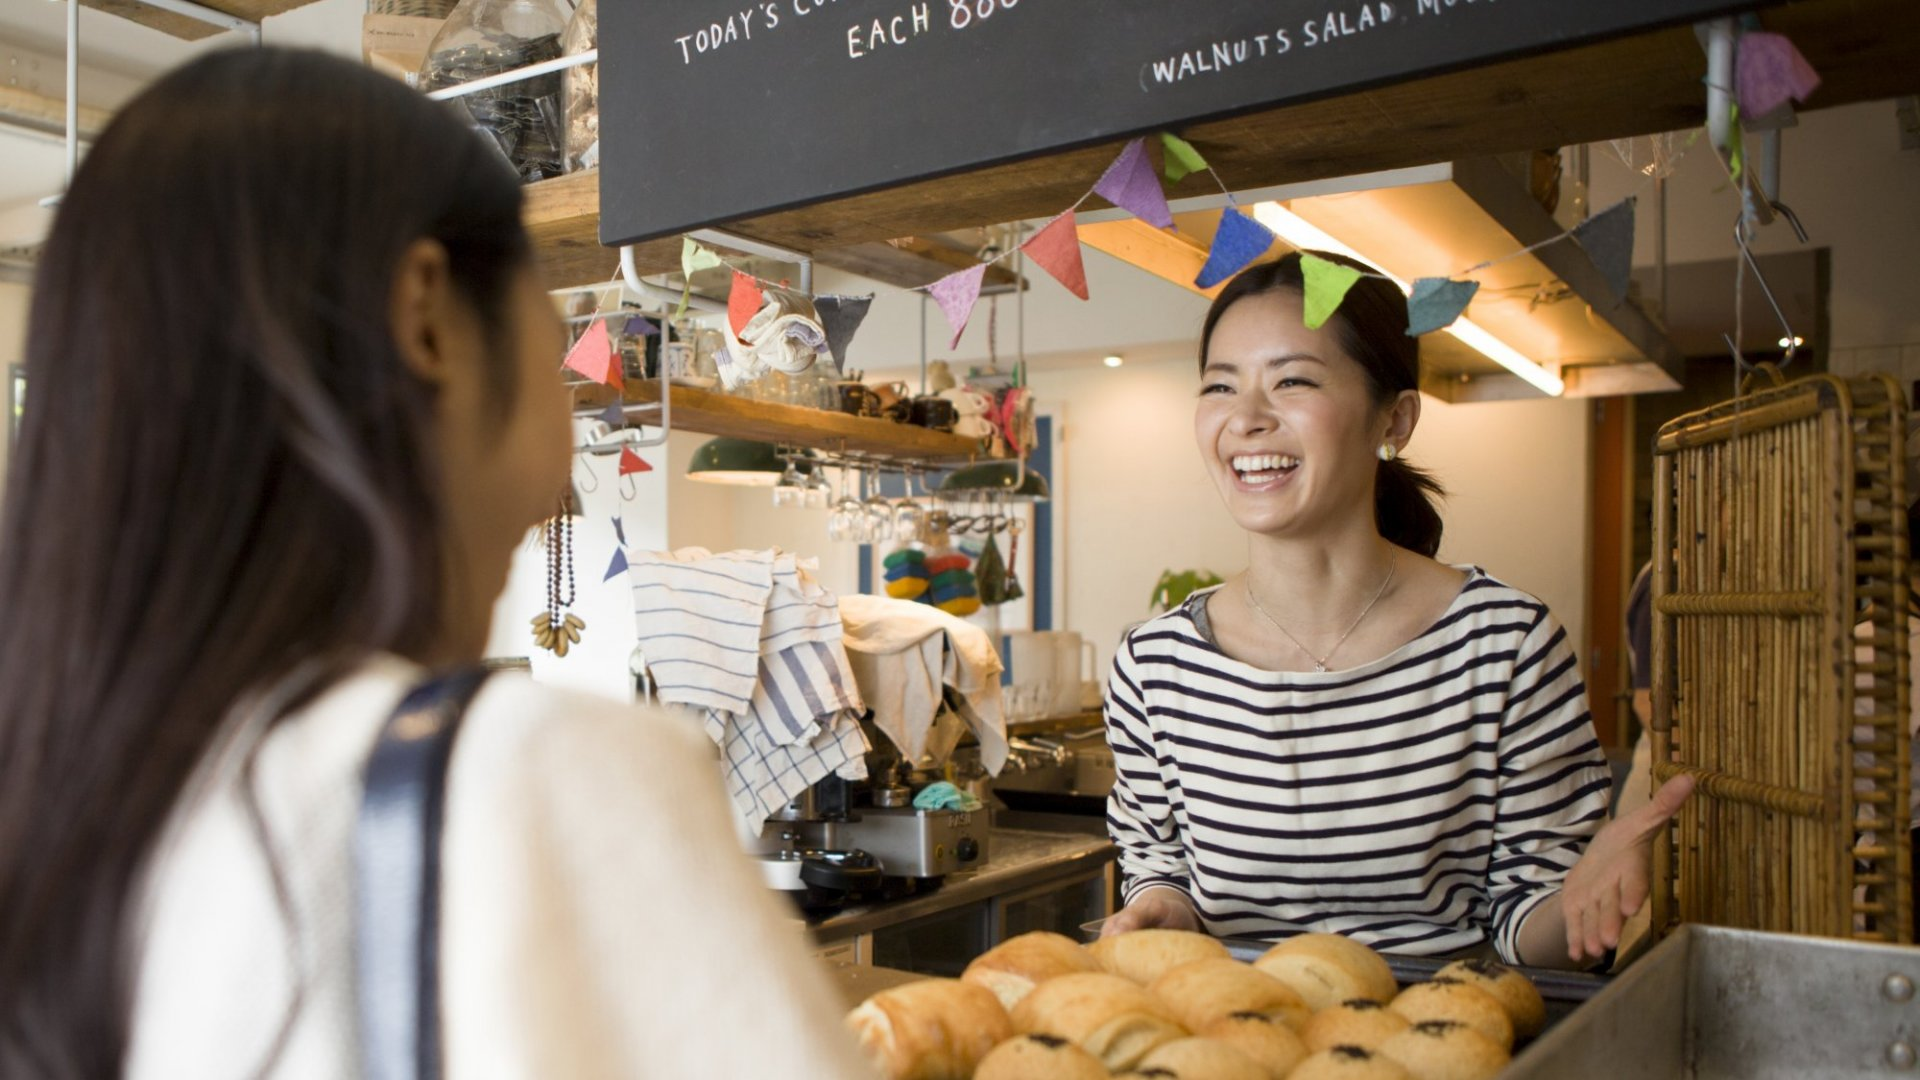 3 Ways to Attract Repeat Customers Without Offering Costly Perks